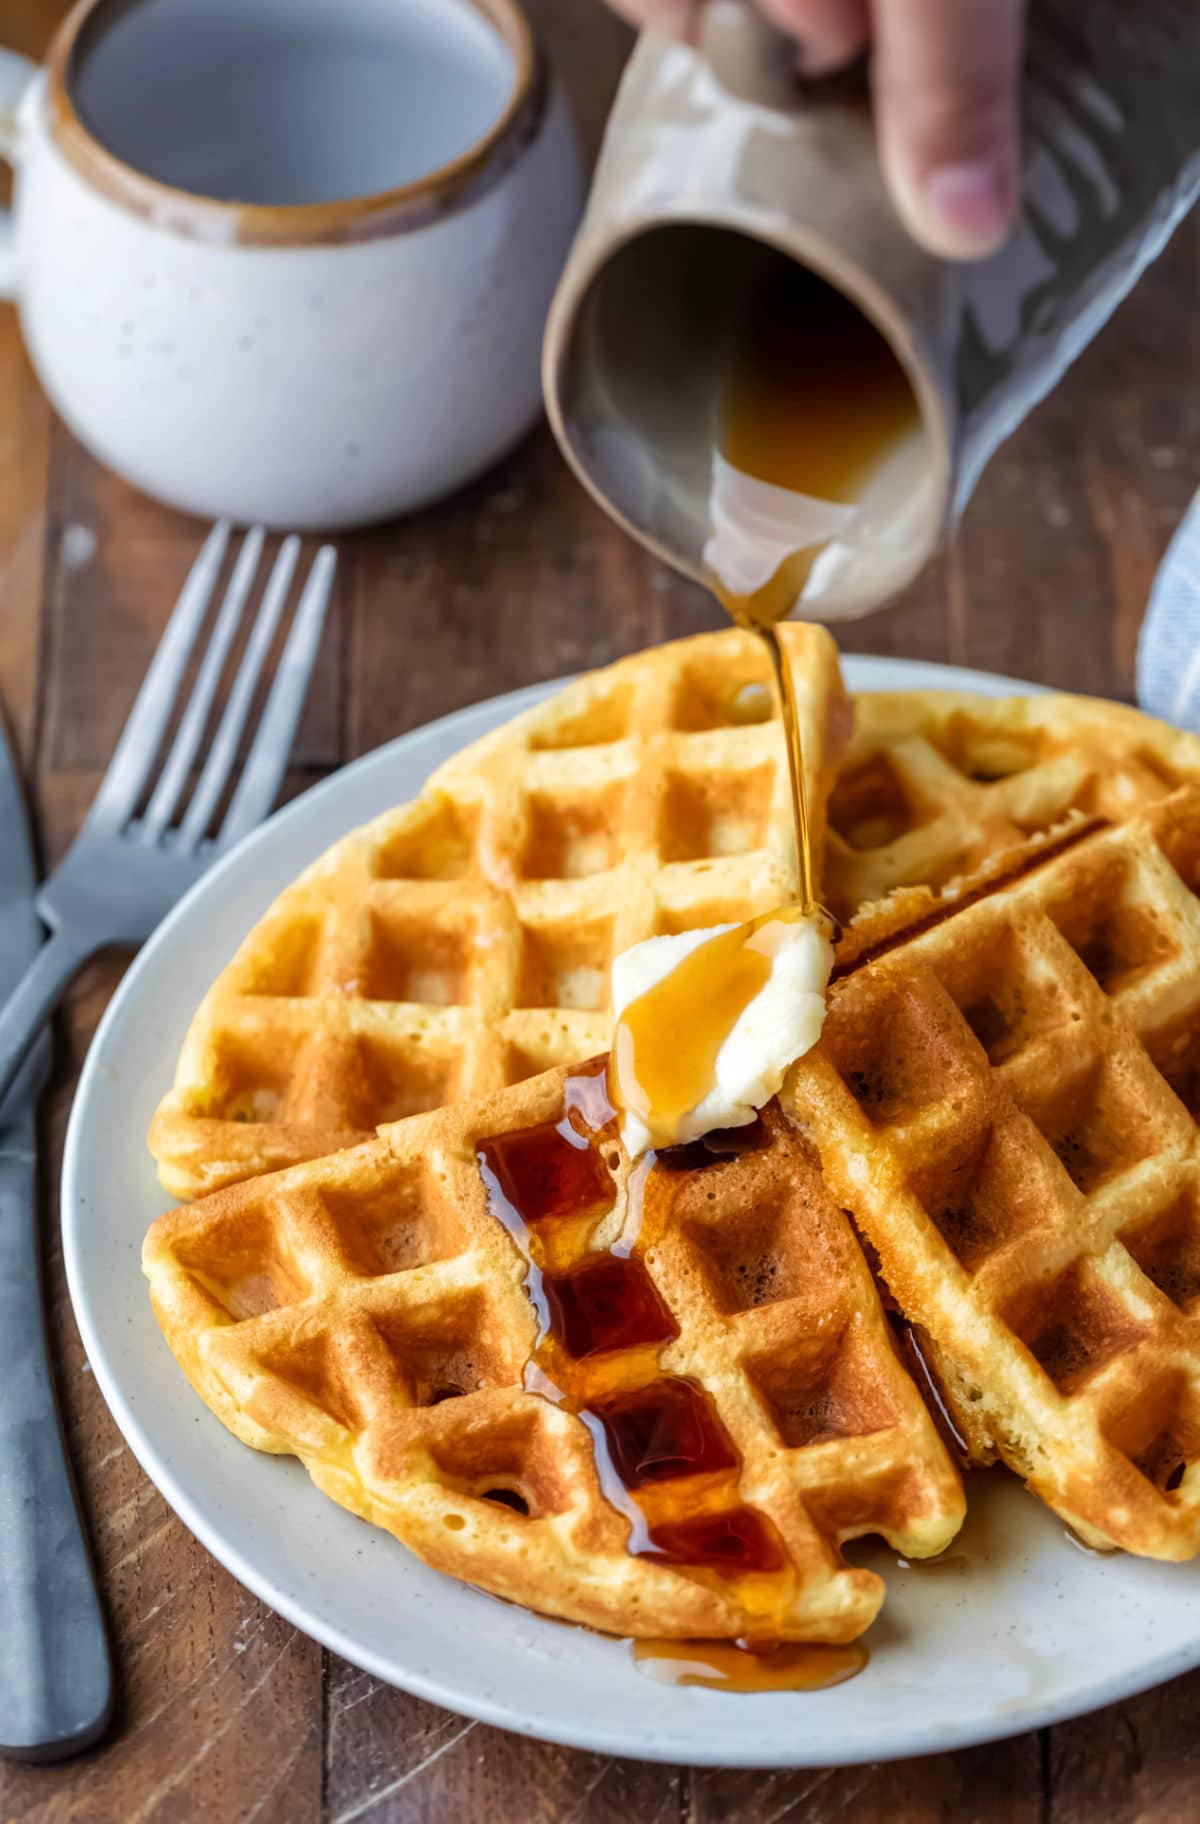 Syrup pouring onto a pat of butter on four waffles.